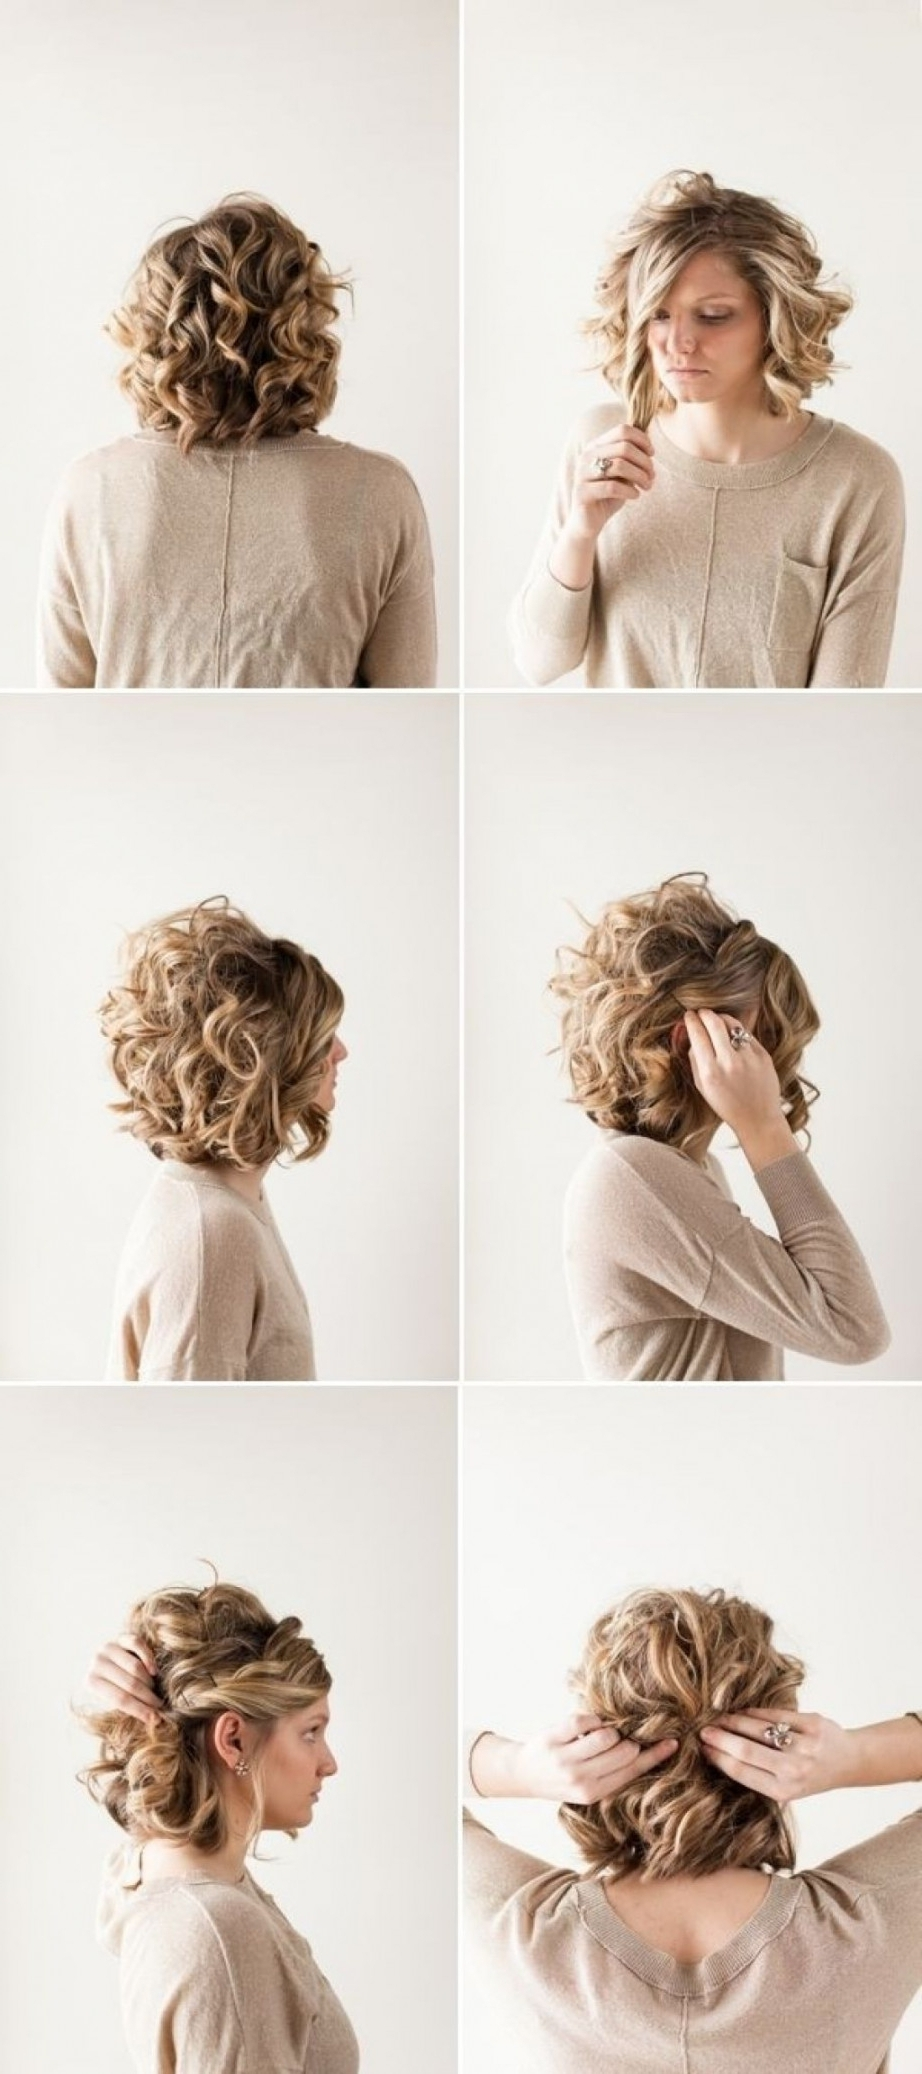 Cute Short Curly Hair Updos Regarding Cute And Easy Updo Hairstyles For Short Hair (View 4 of 15)